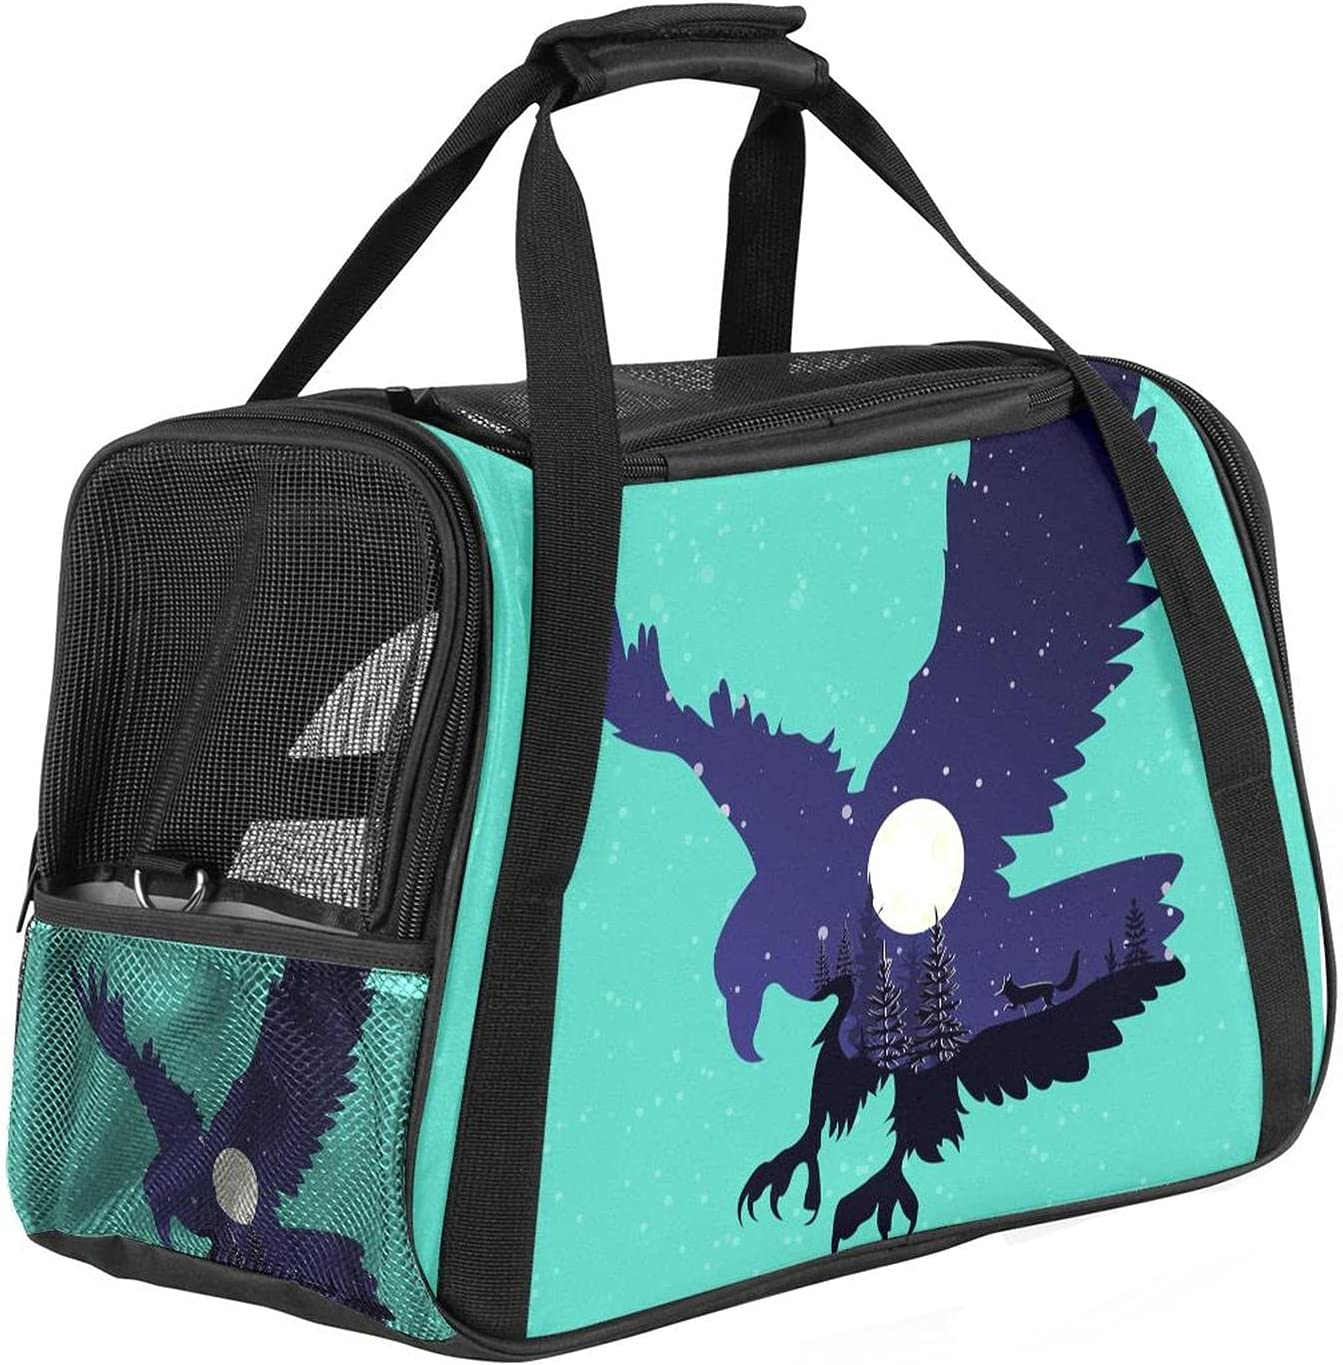 Premium Soft-Sided Pet Travel Cheap sale Carrier Ideal for Nashville-Davidson Mall Small - S Medium